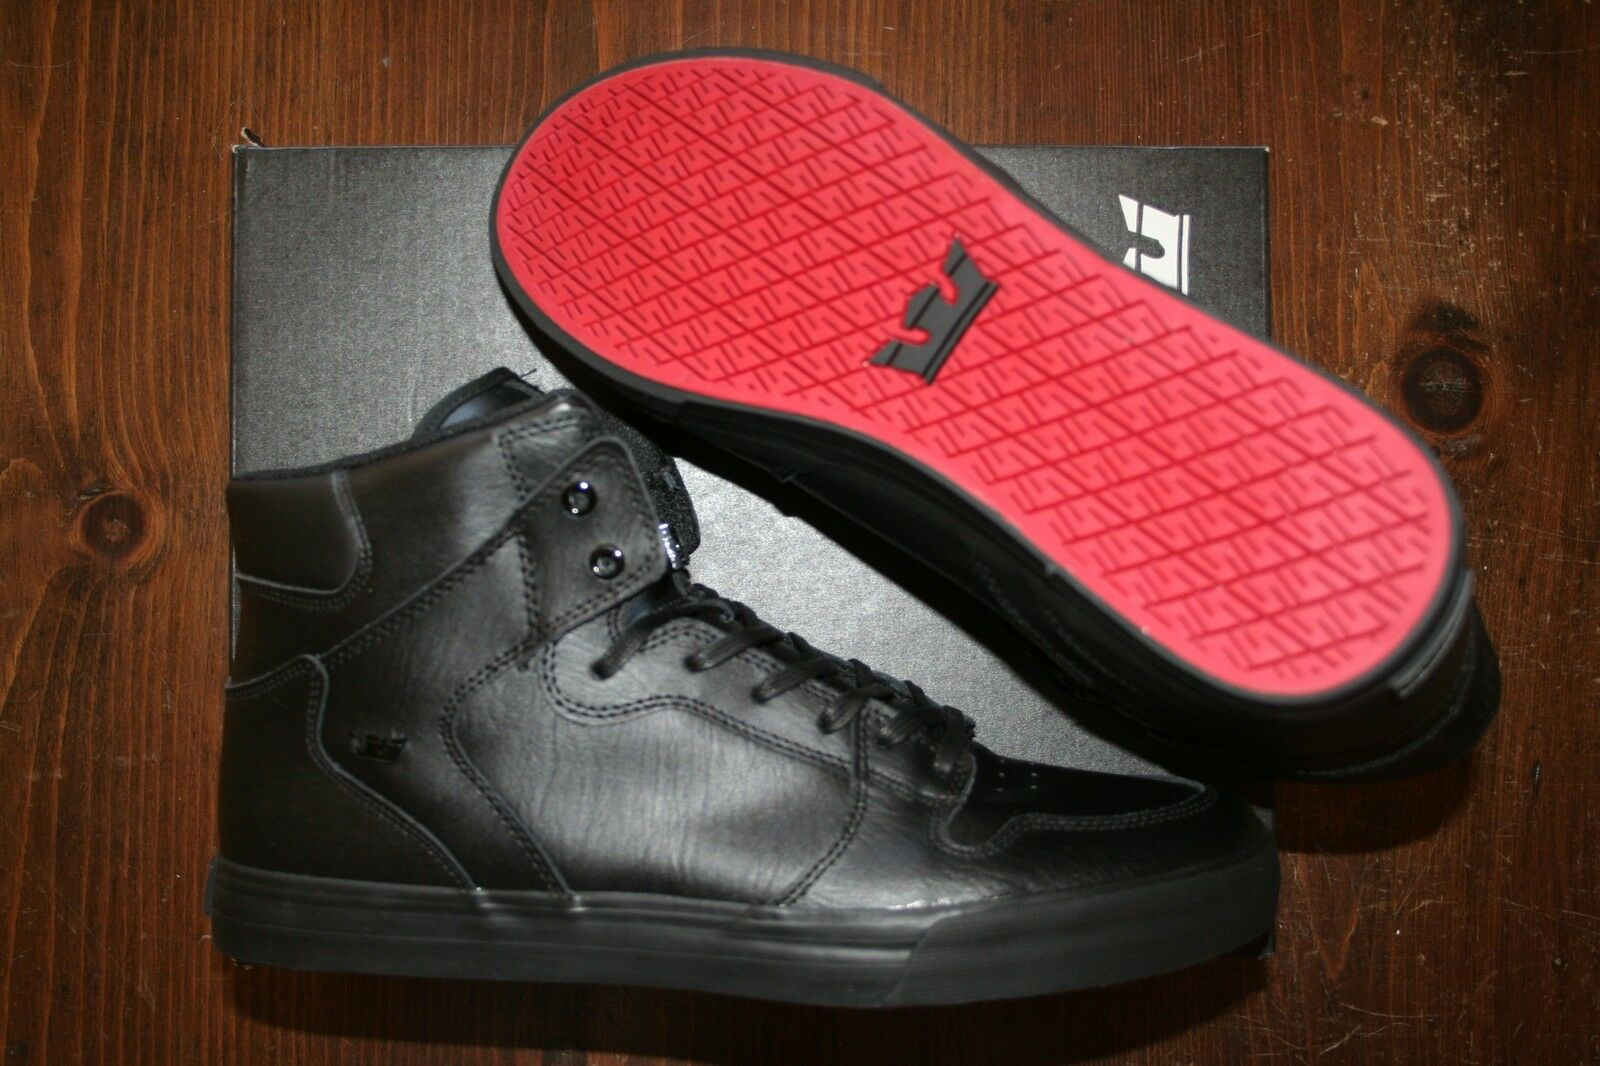 NEW BLACK NEW SUPRA VAIDER BLACK BLACK NEW ROT SURF BMX SNOW SKATEBOARD SPORTS Schuhe 14 0bdc54